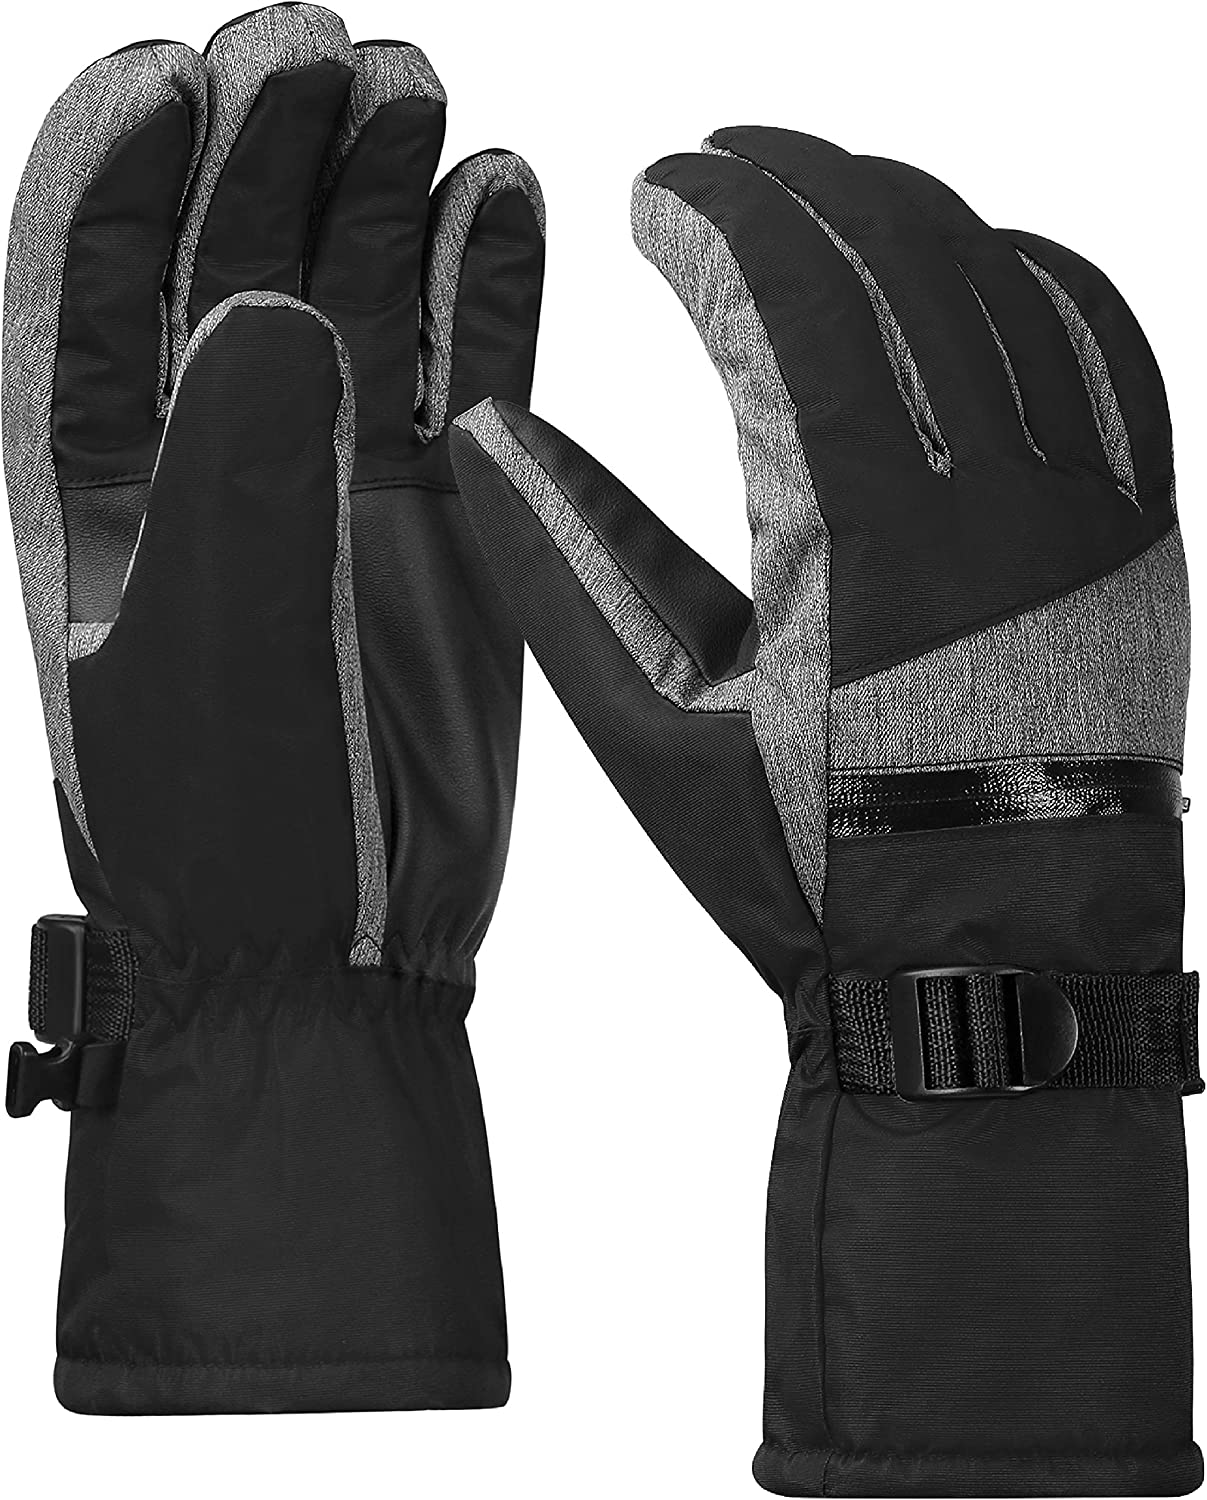 Terra Hiker Men's Waterproof Gloves, Women's Winter Warm Ski Gloves 3M Thinsulate Snowmobile Cold Weather Gloves for Adults : Clothing